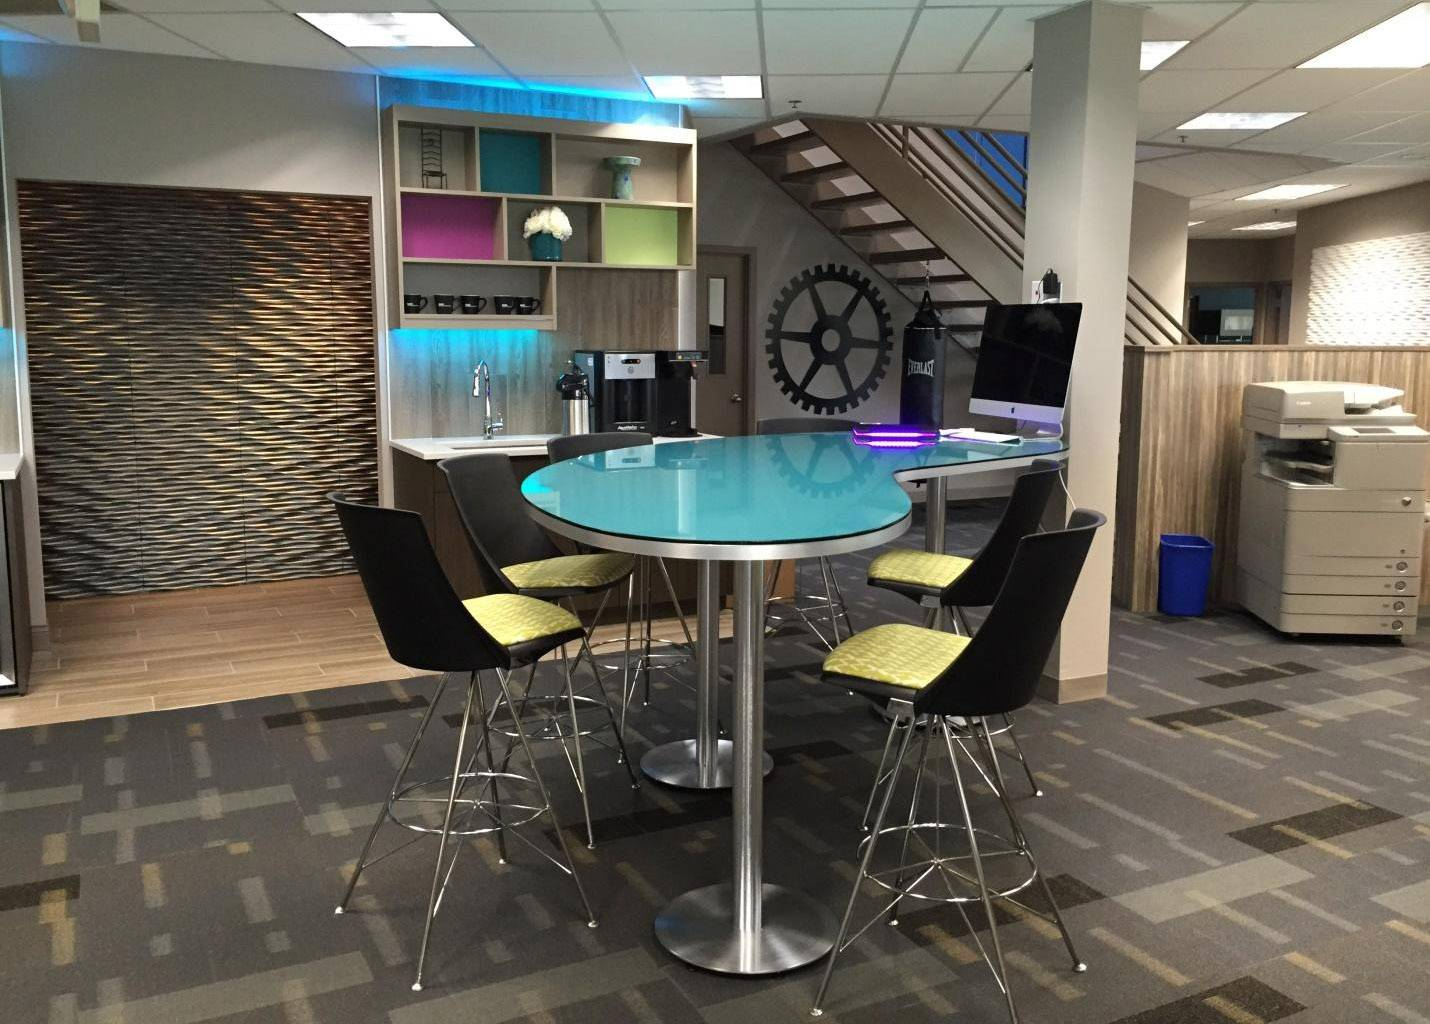 An office design proposal for a conference room at Ahlbeck & Company in Des Plaines.